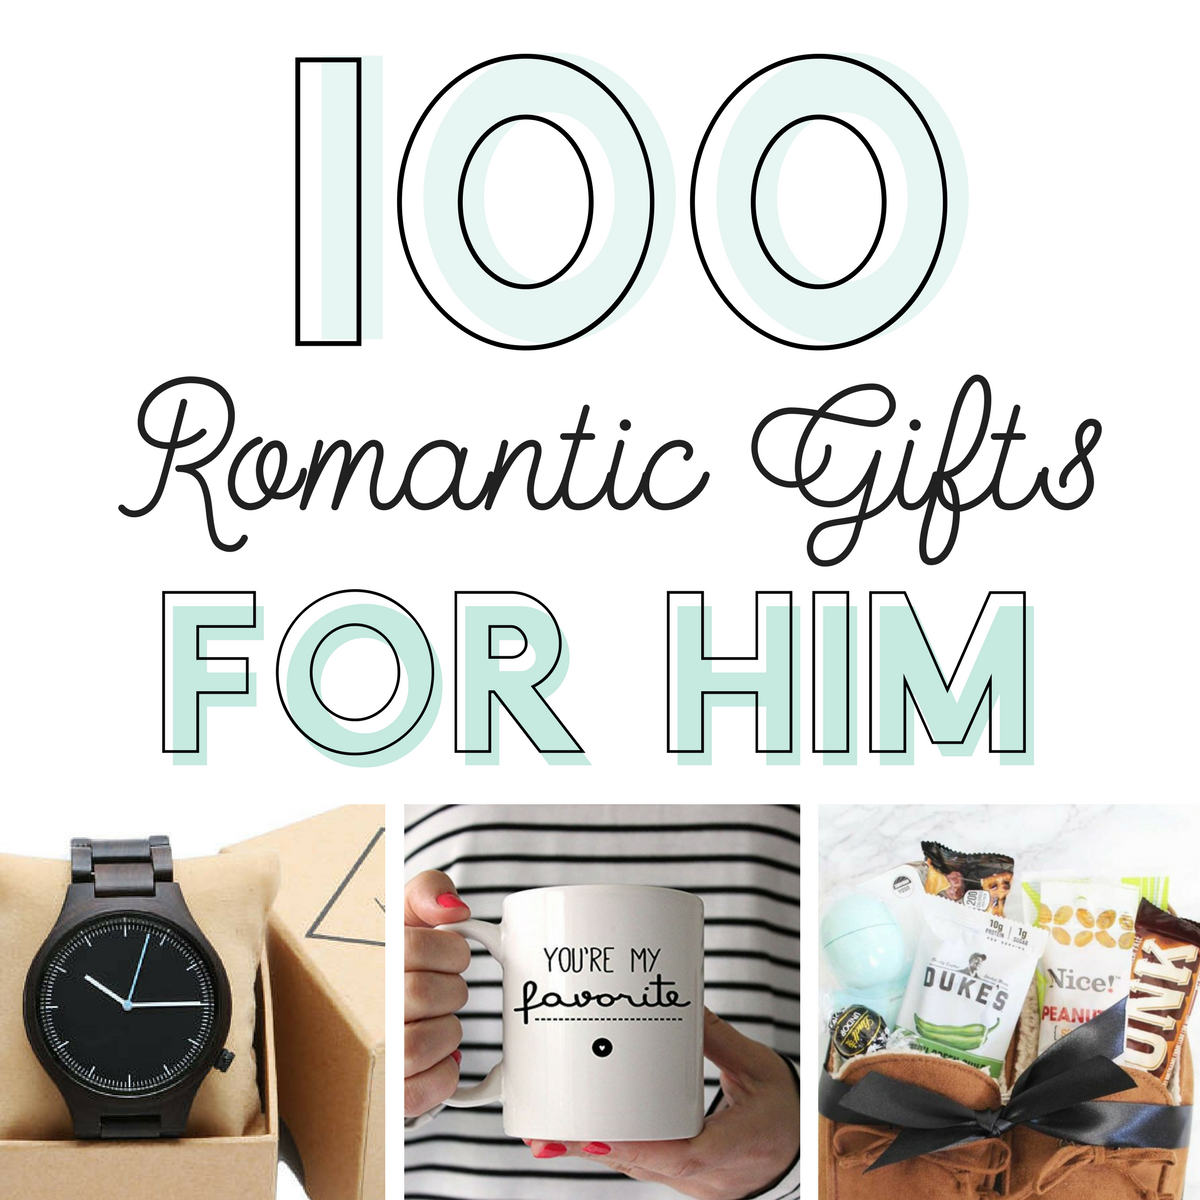 Gift ideas for him just started dating